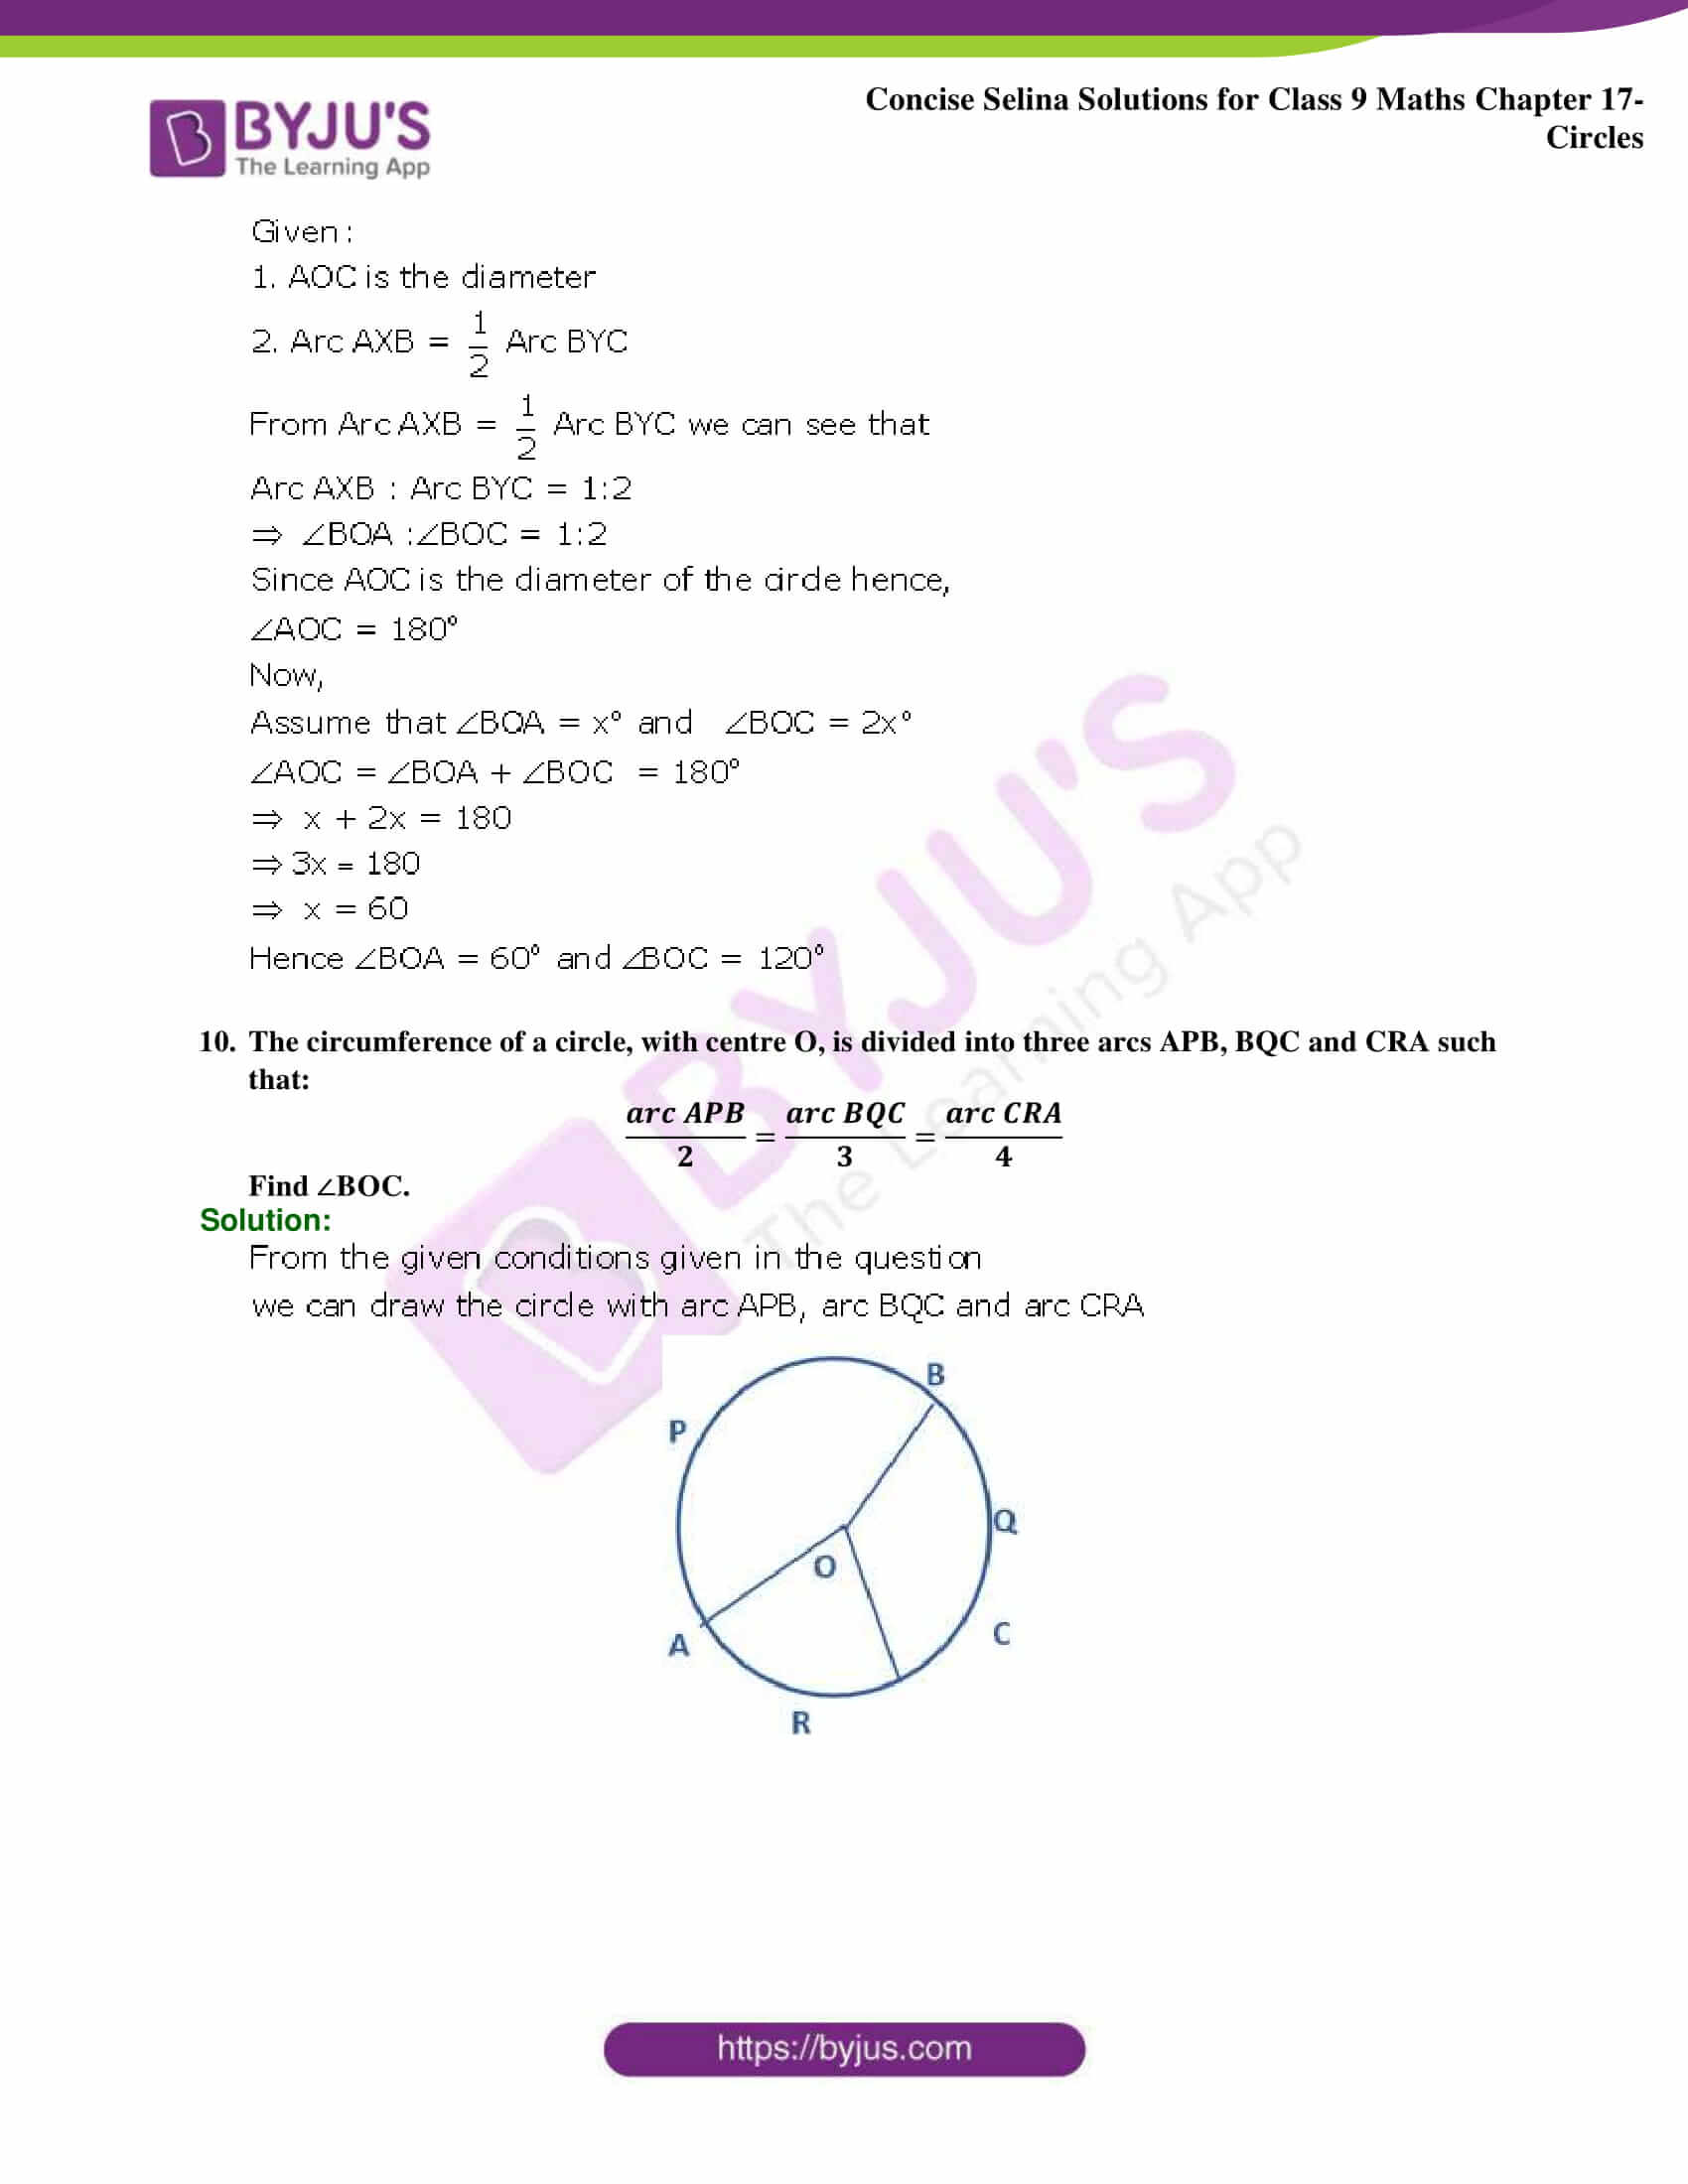 Concise Selina Solutions Class 9 Maths Chapter 17 Circles part 36